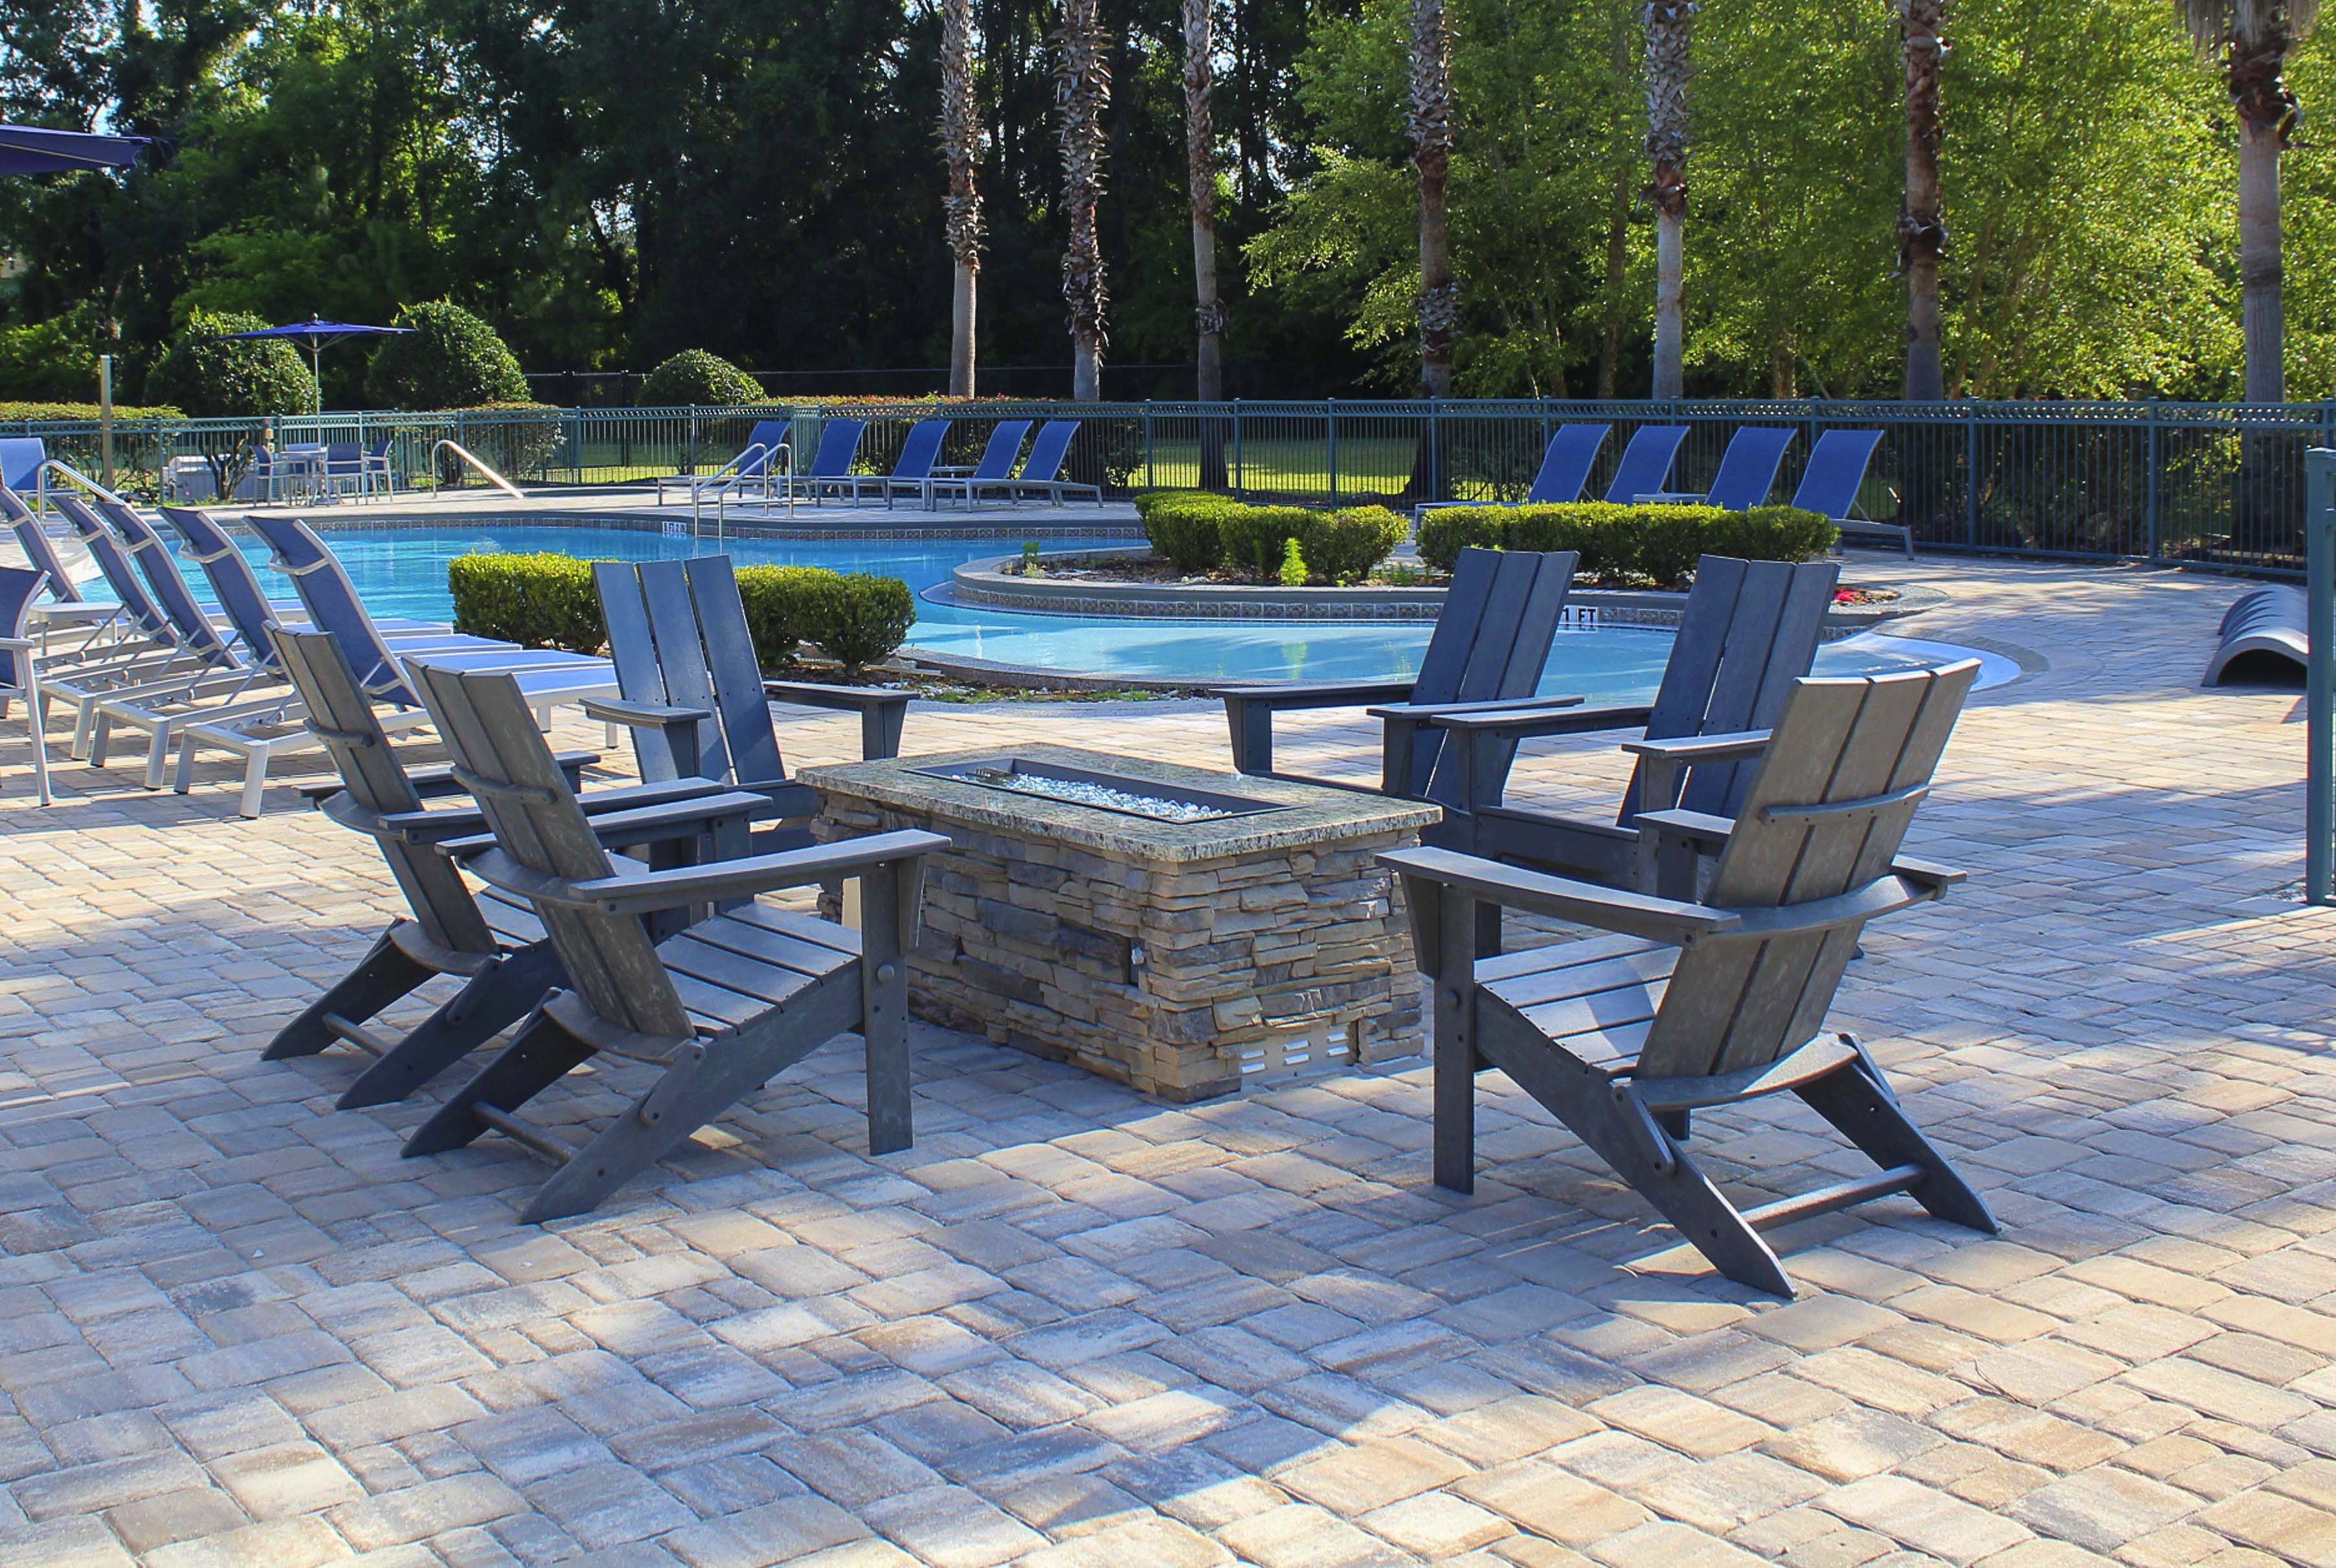 Pool-side gas fire pit with conversational area